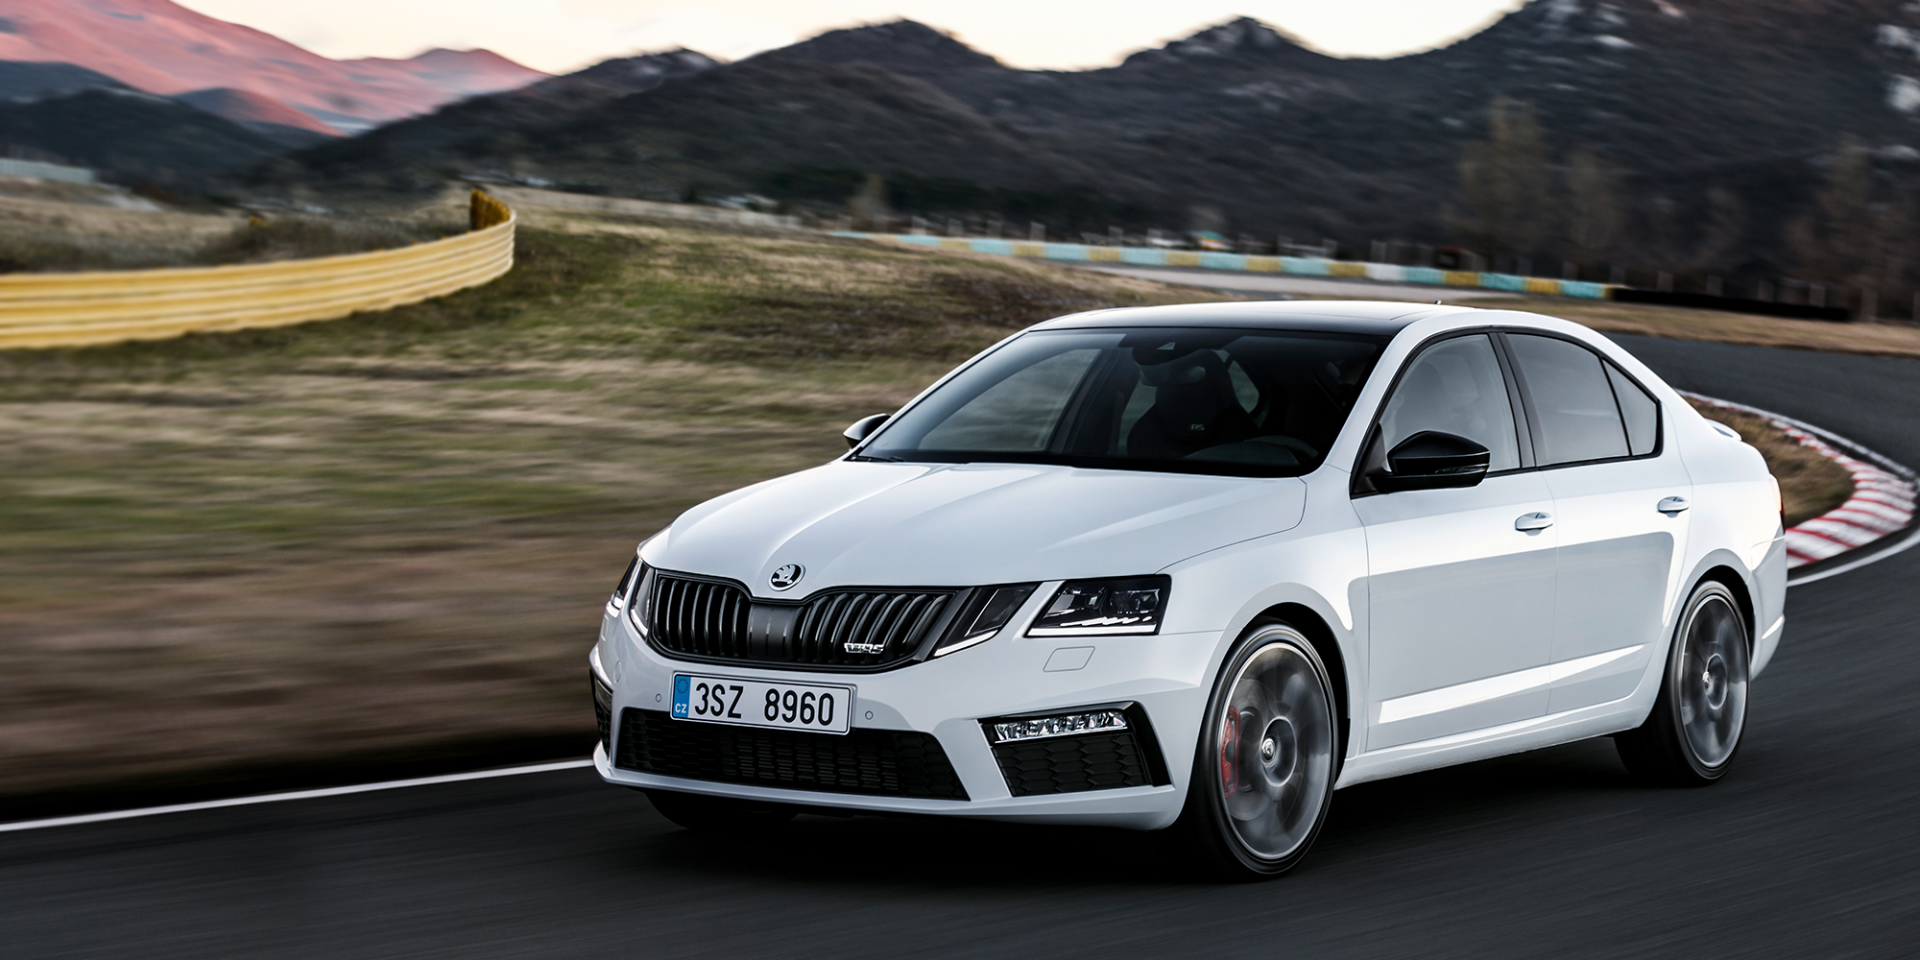 THE UPGRADED ŠKODA OCTAVIA